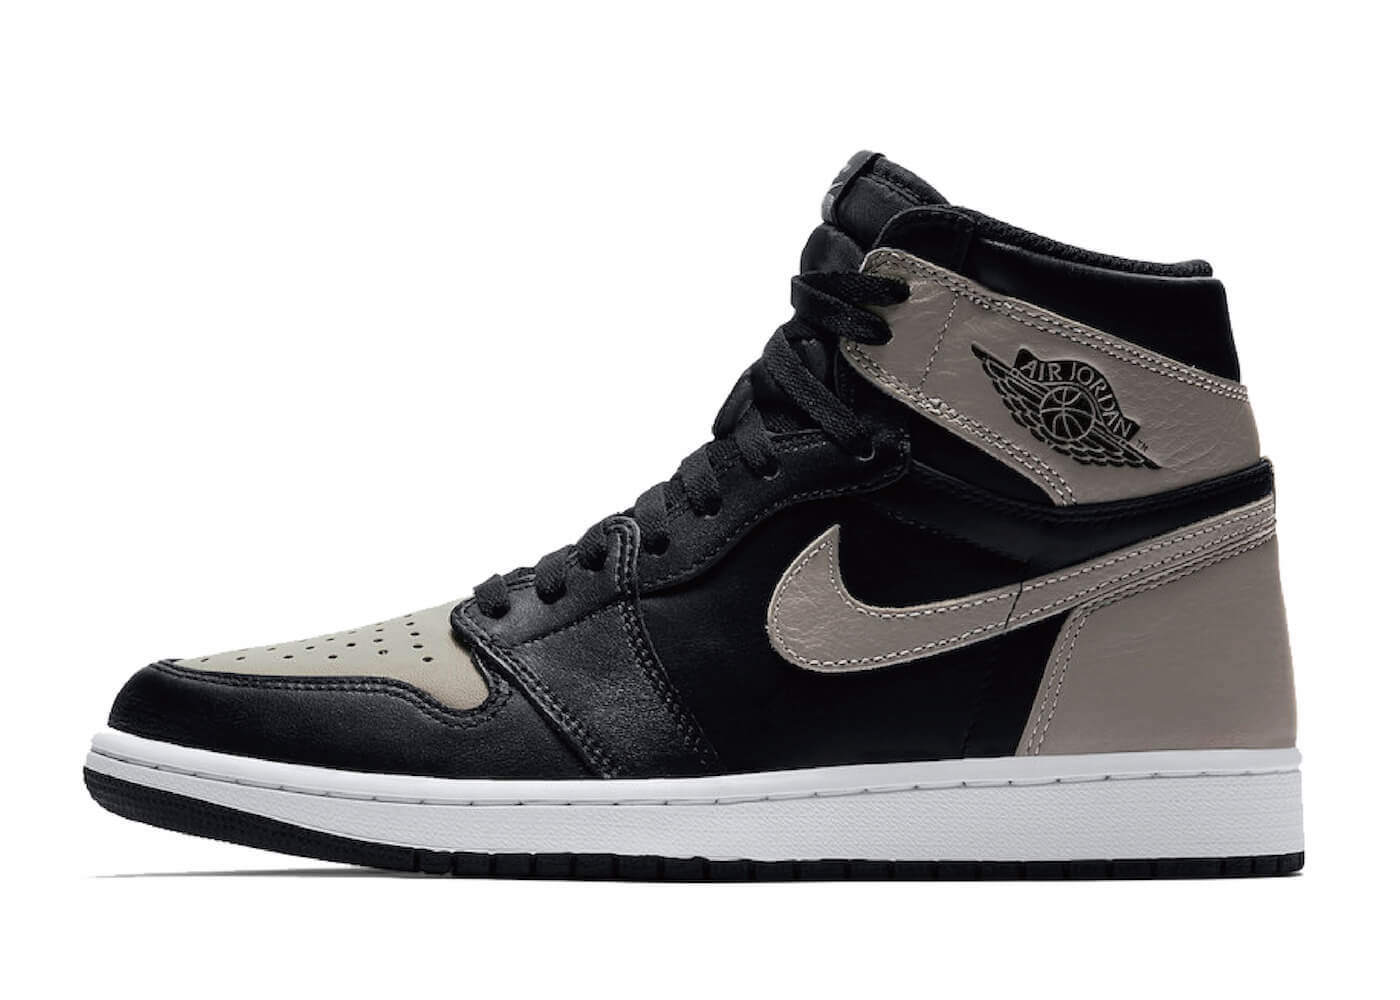 JORDAN 1 RETRO HIGH OG SHADOW (2018)の写真